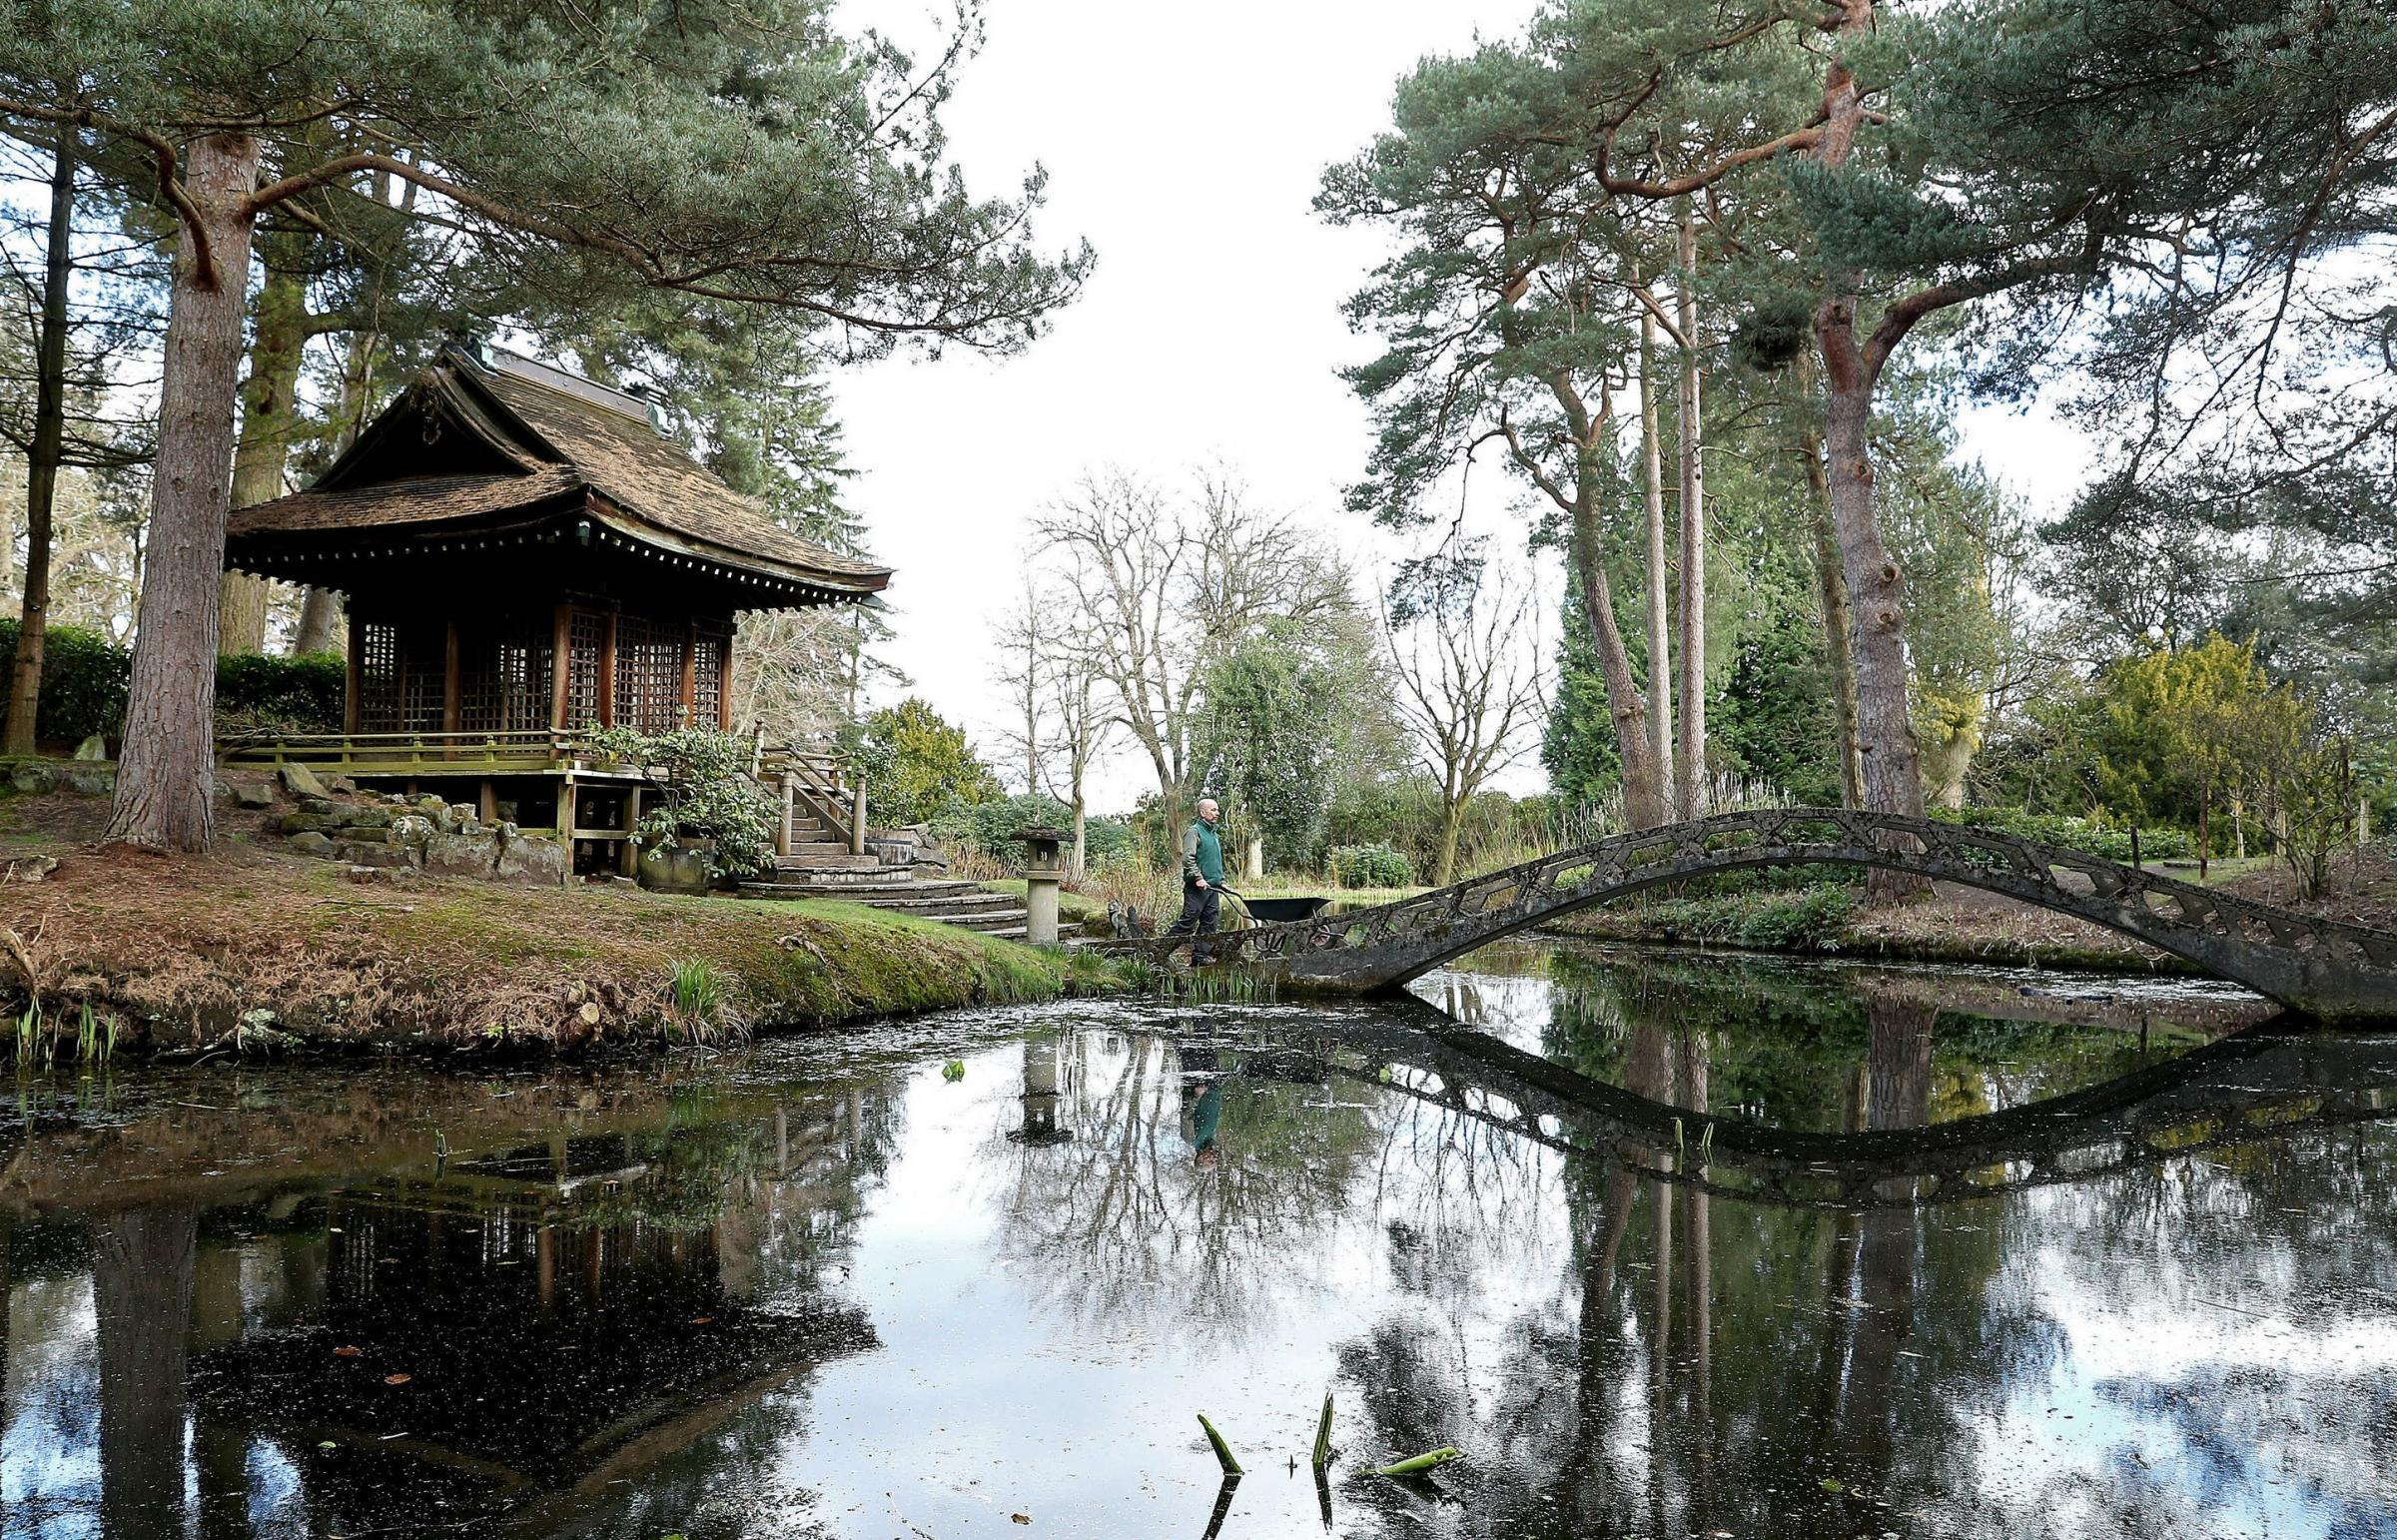 Head gardener Simon Tetlow stands in the Japanese Garden as he prepares for the return of visitors to Tatton Garden's, Tatton Park in Knutsford, Cheshire, which will reopen when further coronavirus lockdown restrictions are eased in England next